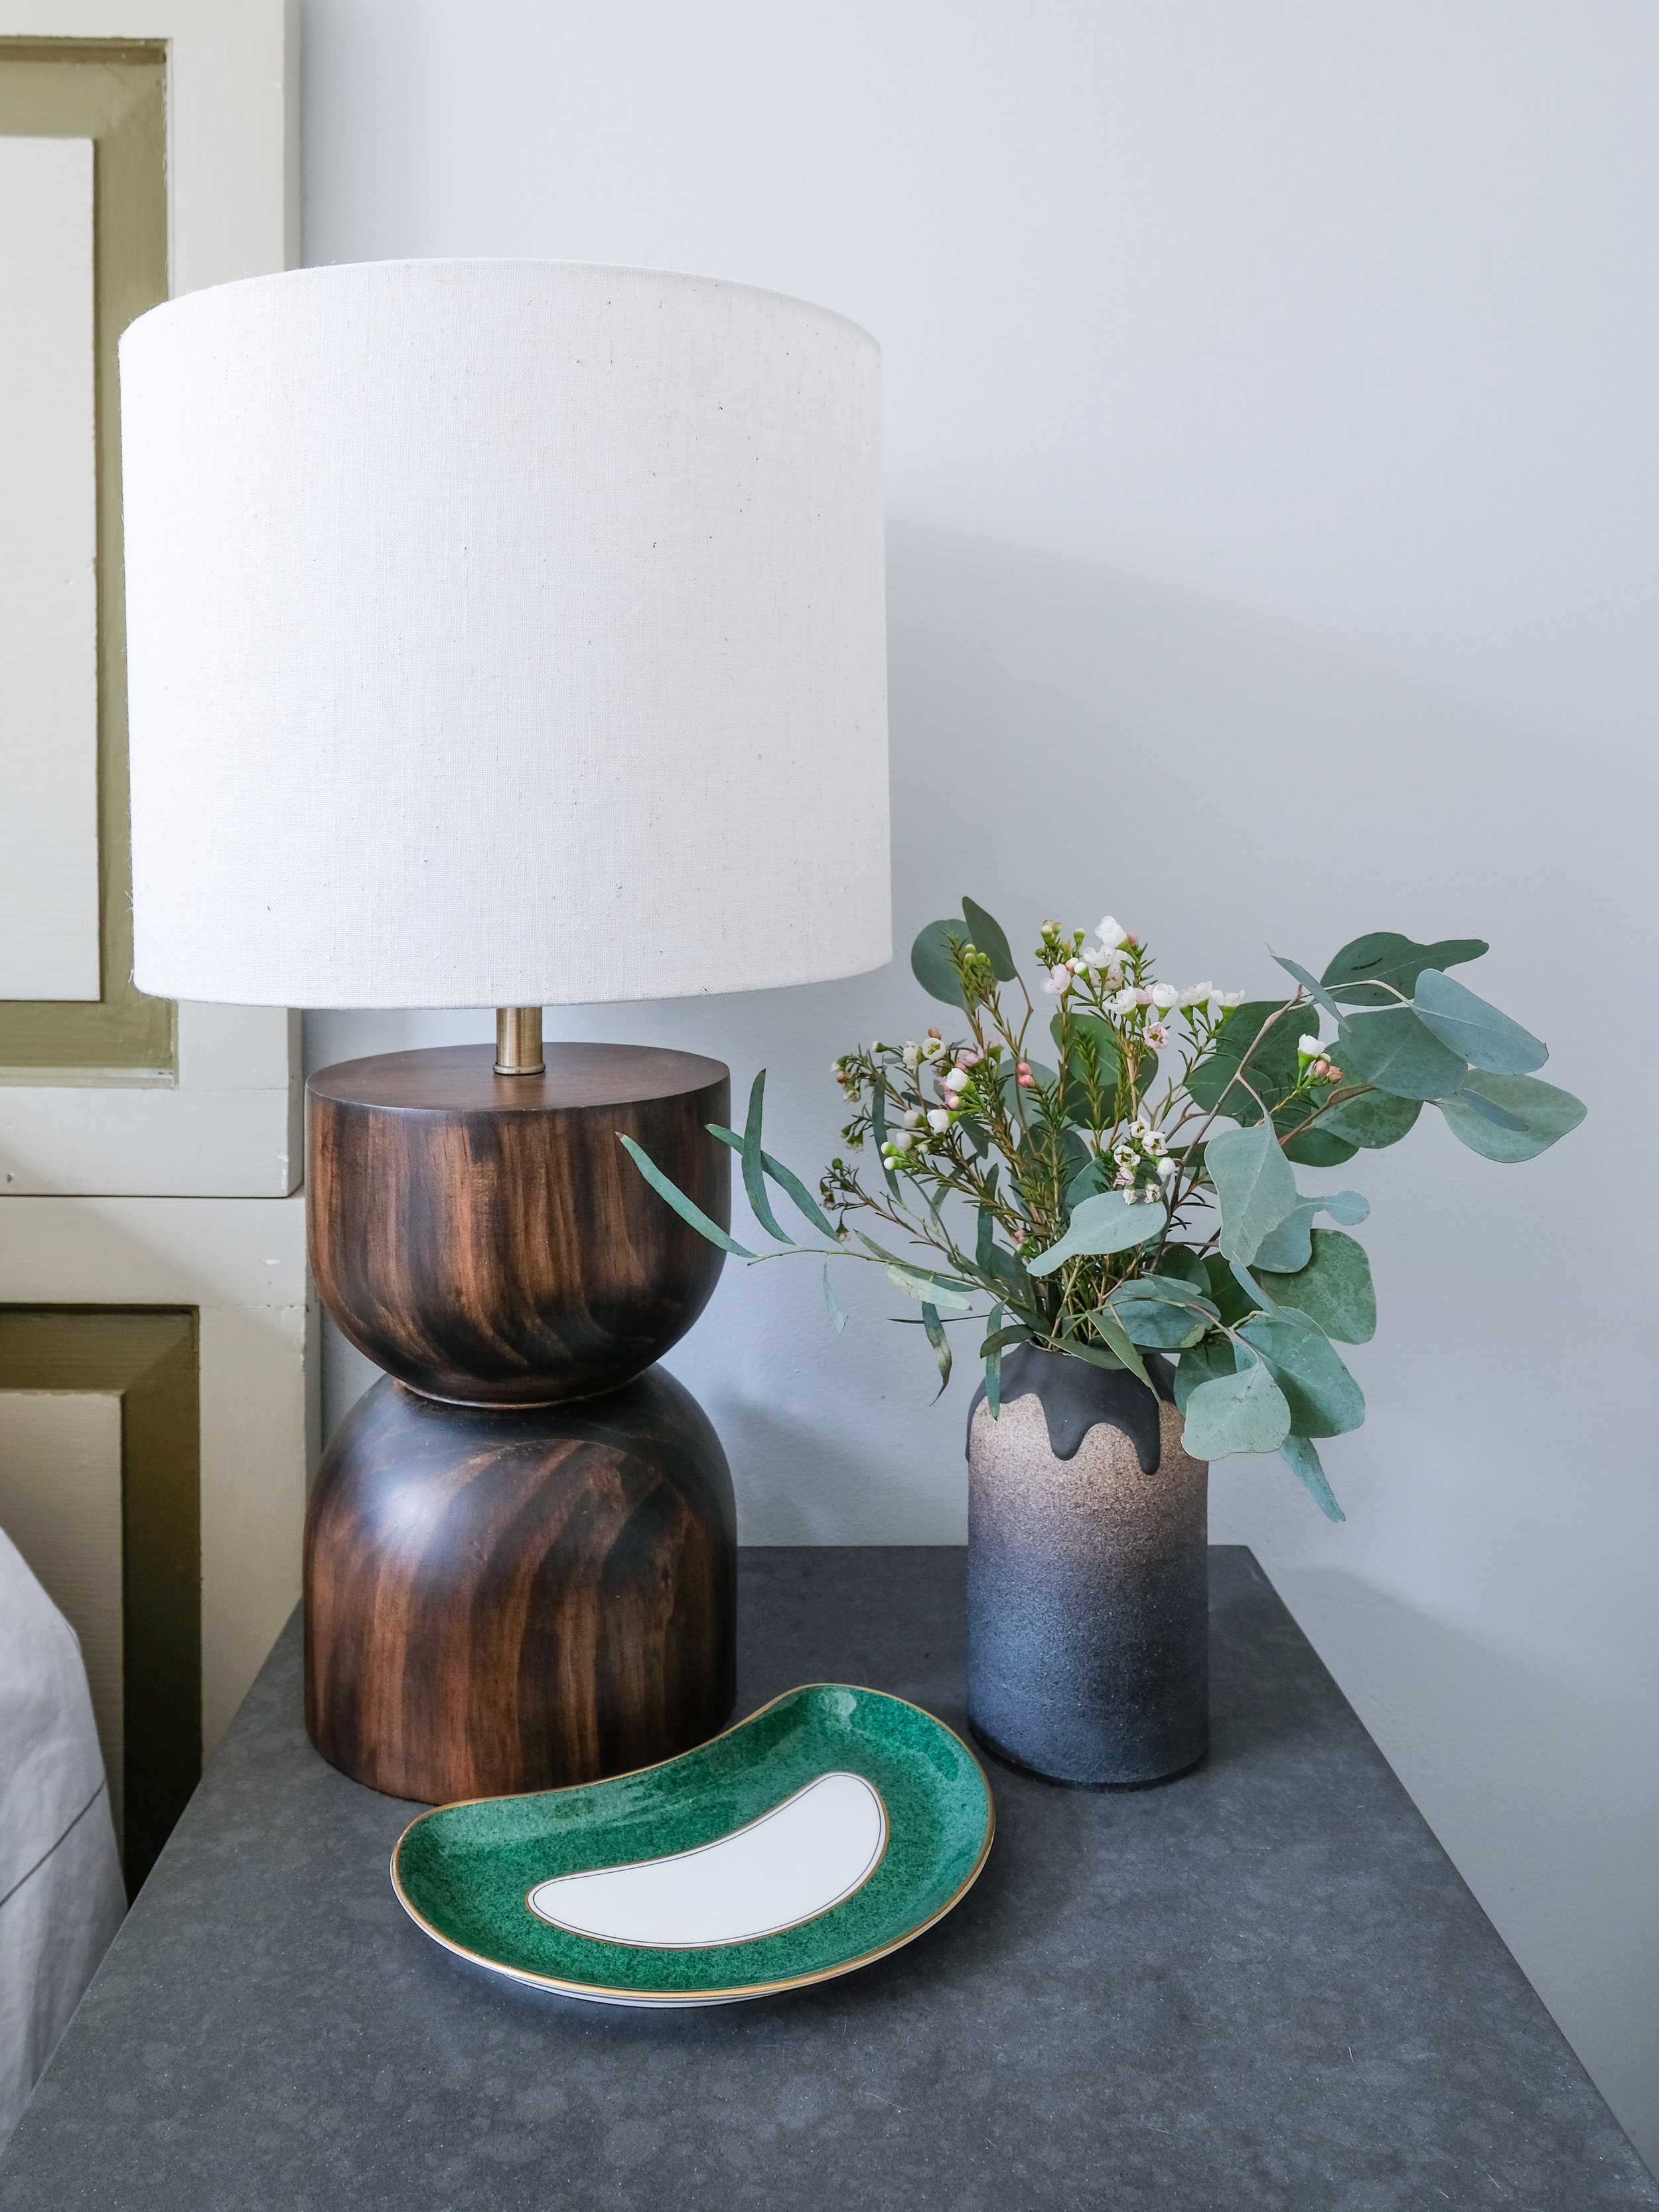 This CB2 lamp is one of my favorites!